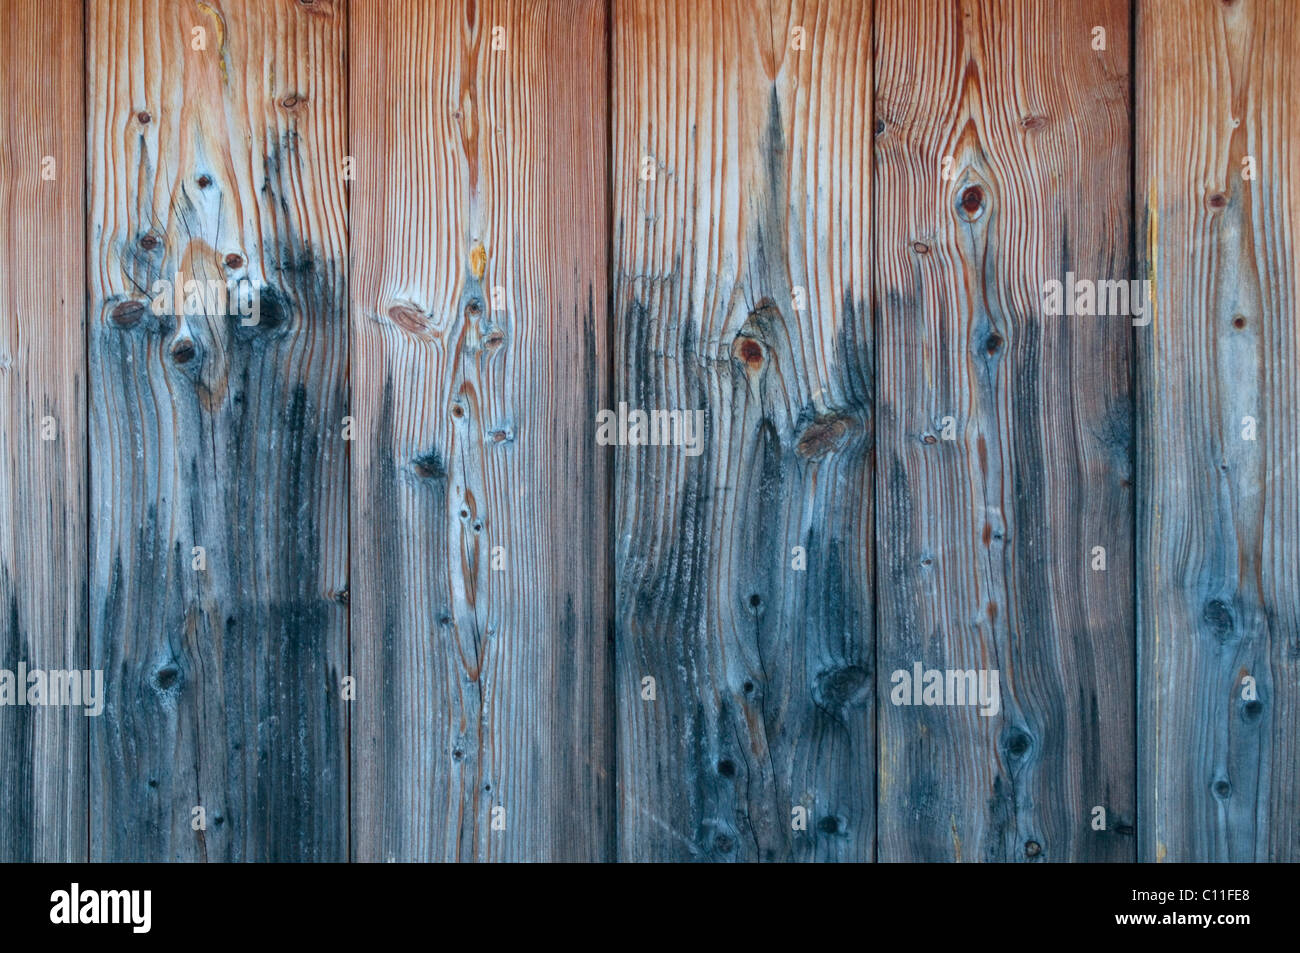 Detailed wooden boards with weathered gray areas, background - Stock Image